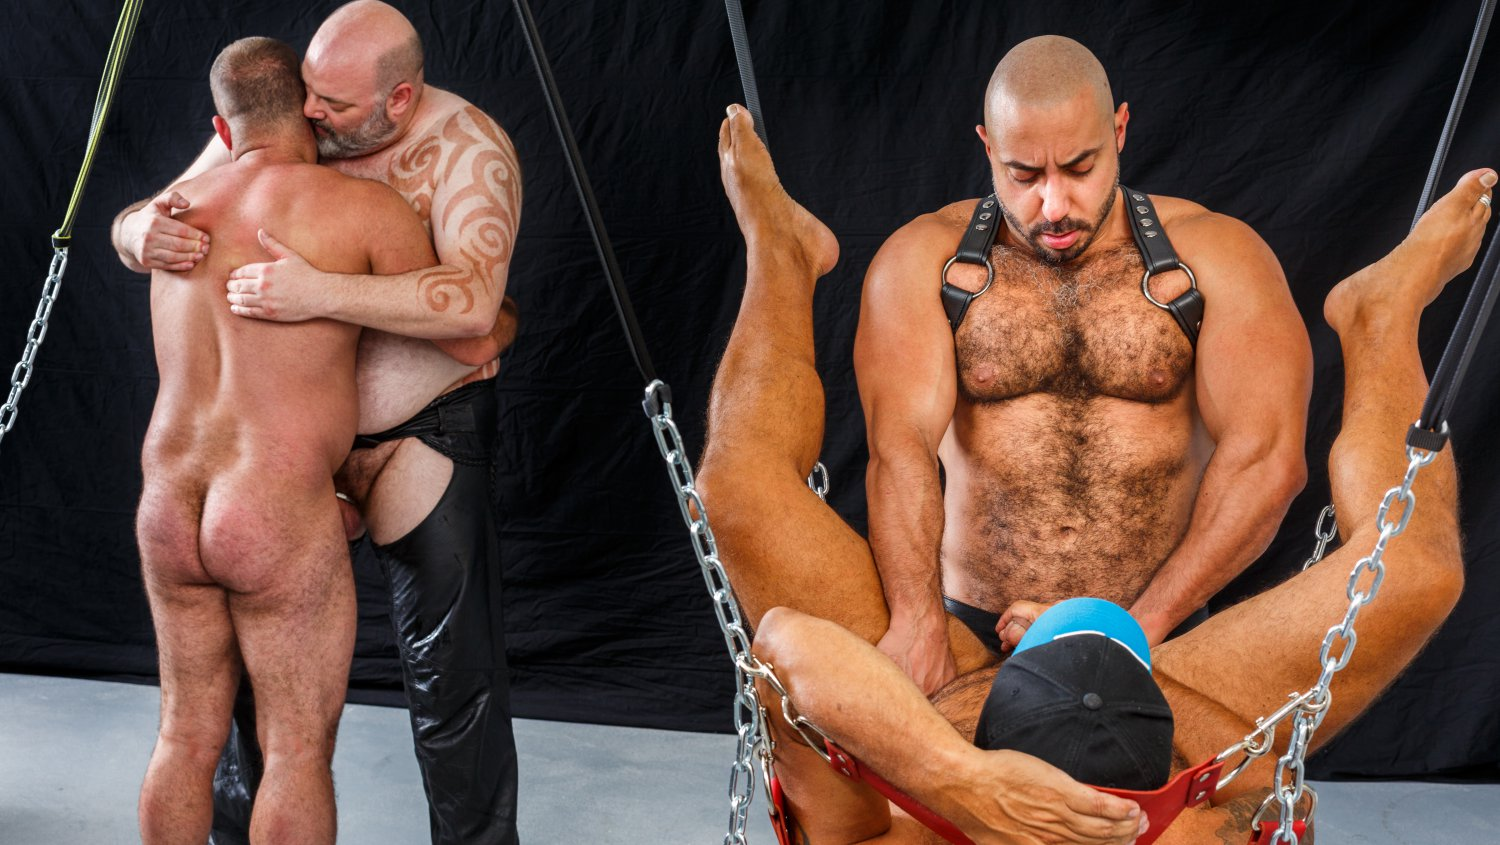 Sling Gang Bang Part 3 - HairyAndRaw hard porn sex gallary